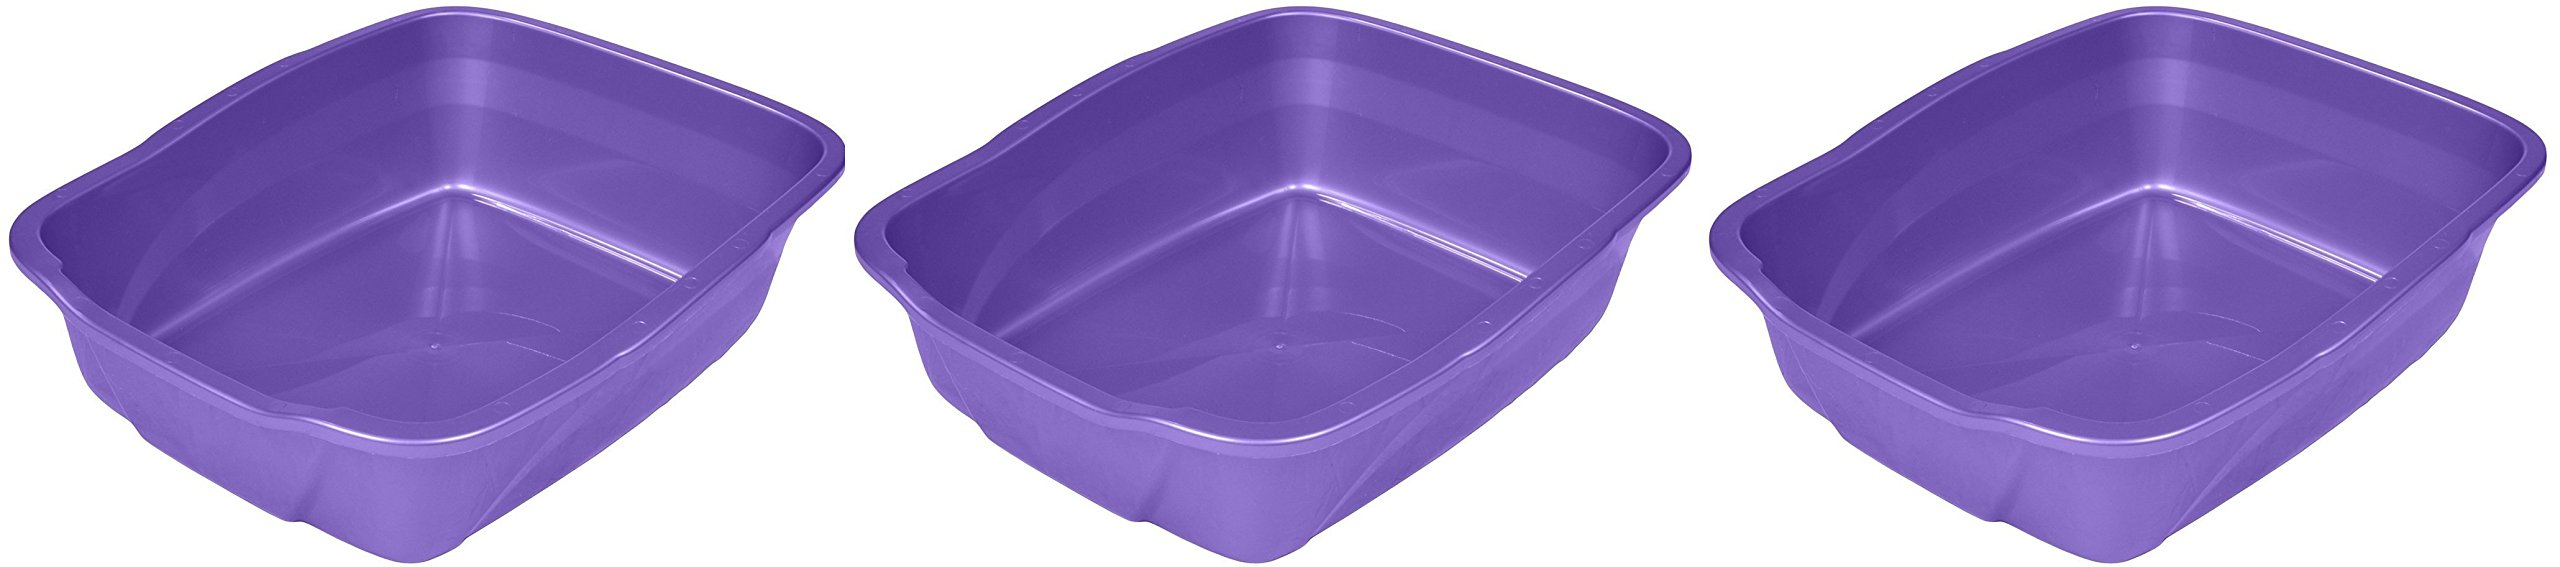 Vanness Cp2 Large Cat Pan 3 Pack Colors May Vary (Blue, Gray, Purple,)